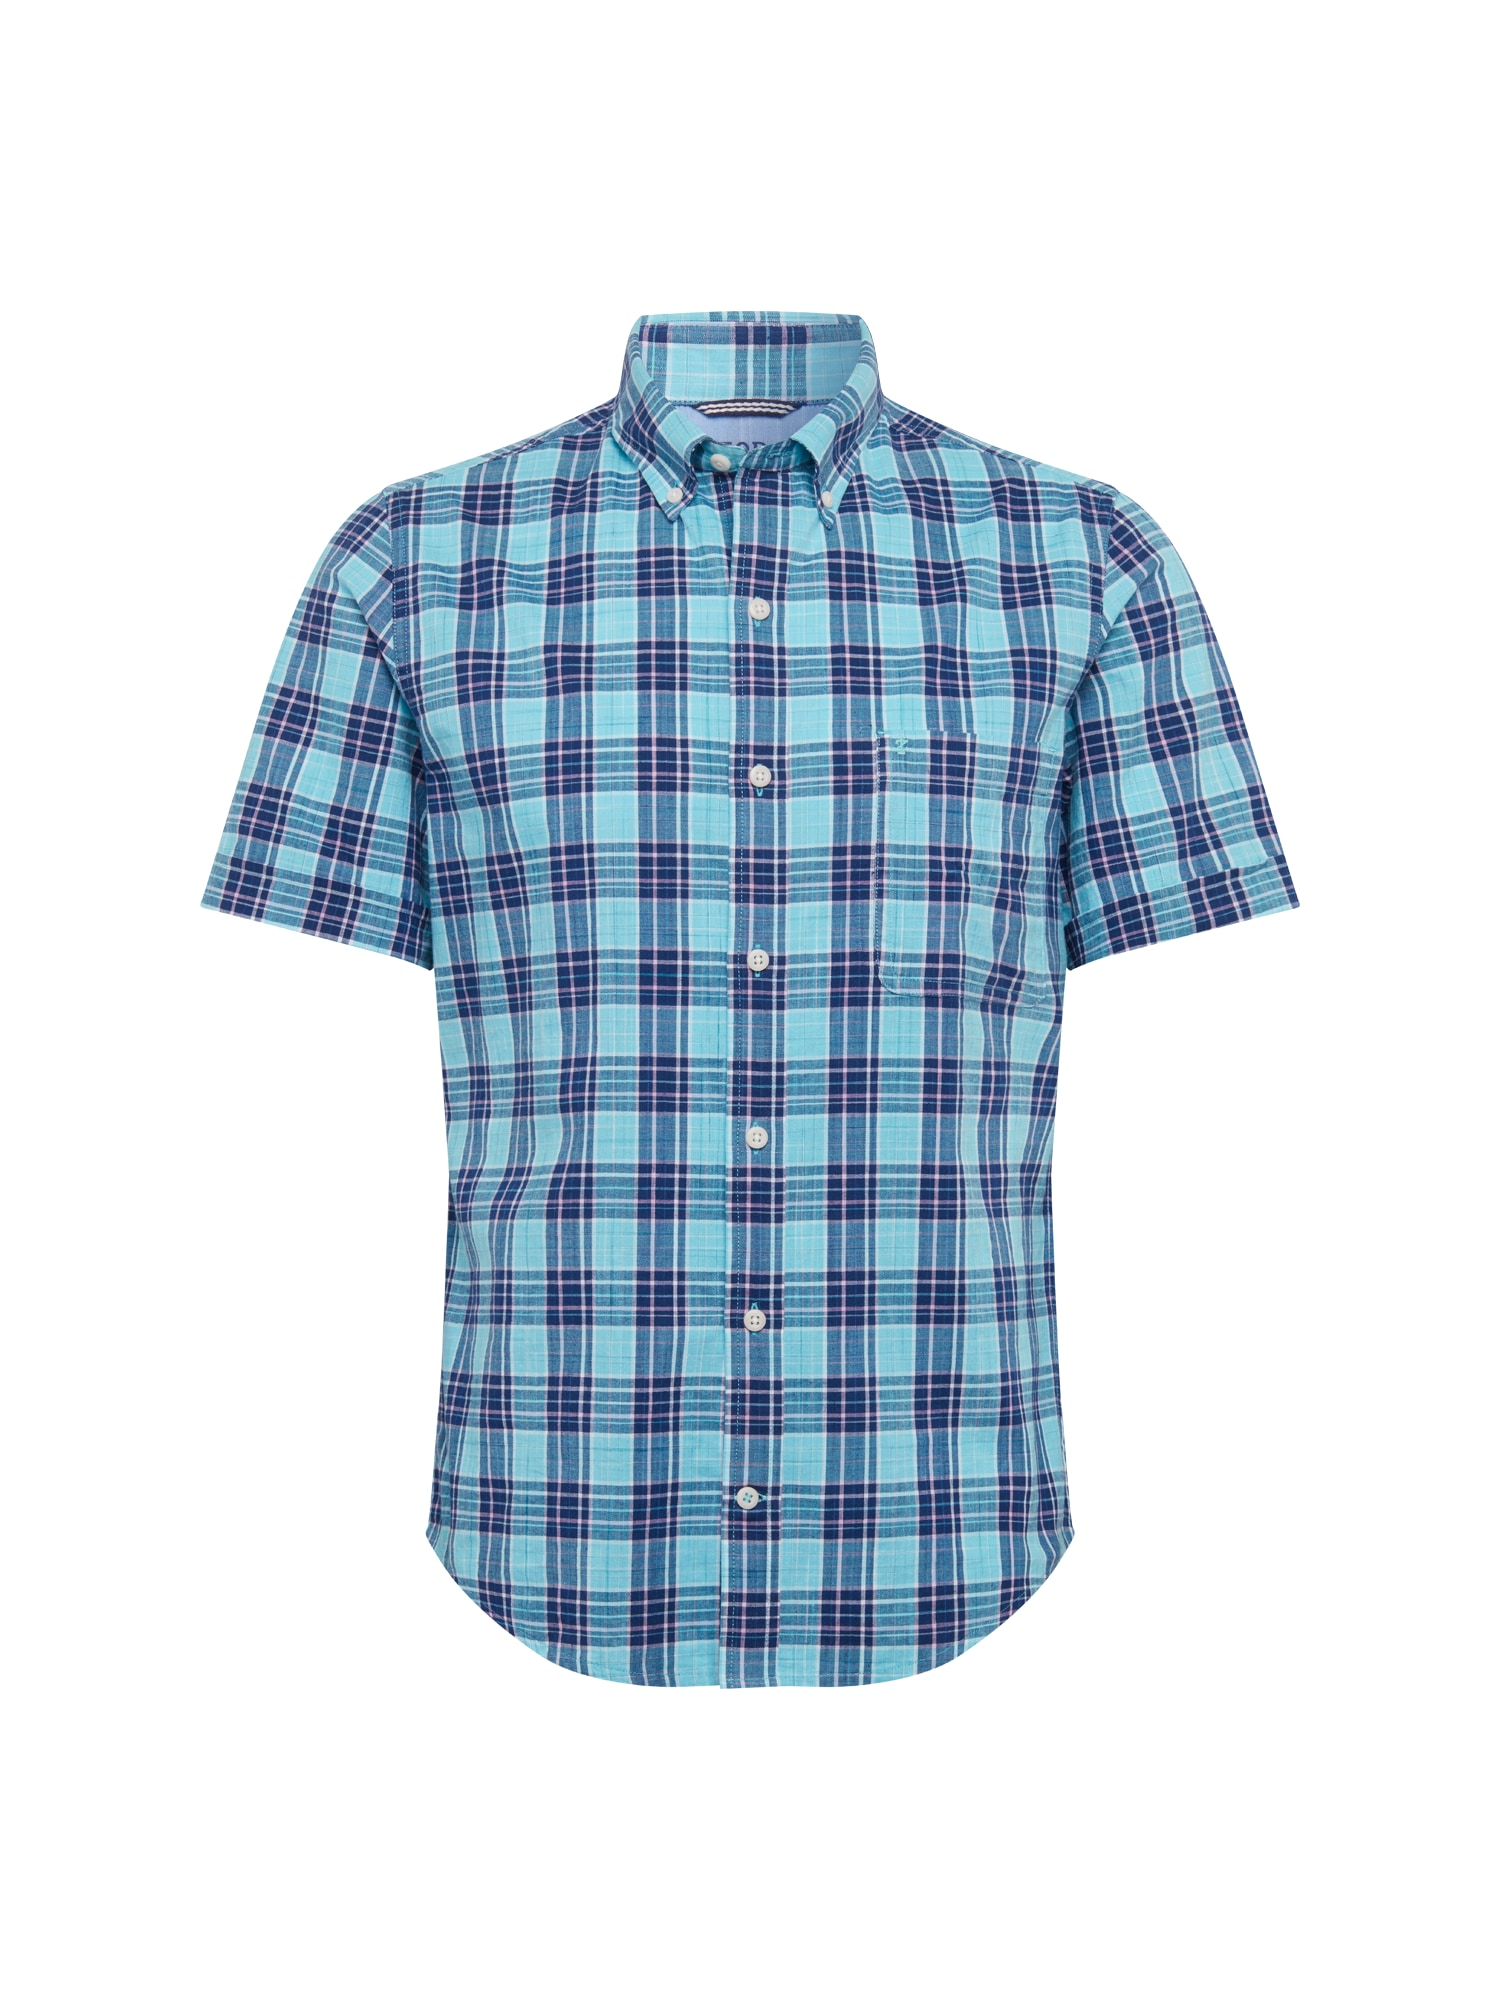 Košile DOCKSIDE CHAMBRAY PLAID SS SHIRT modrá IZOD